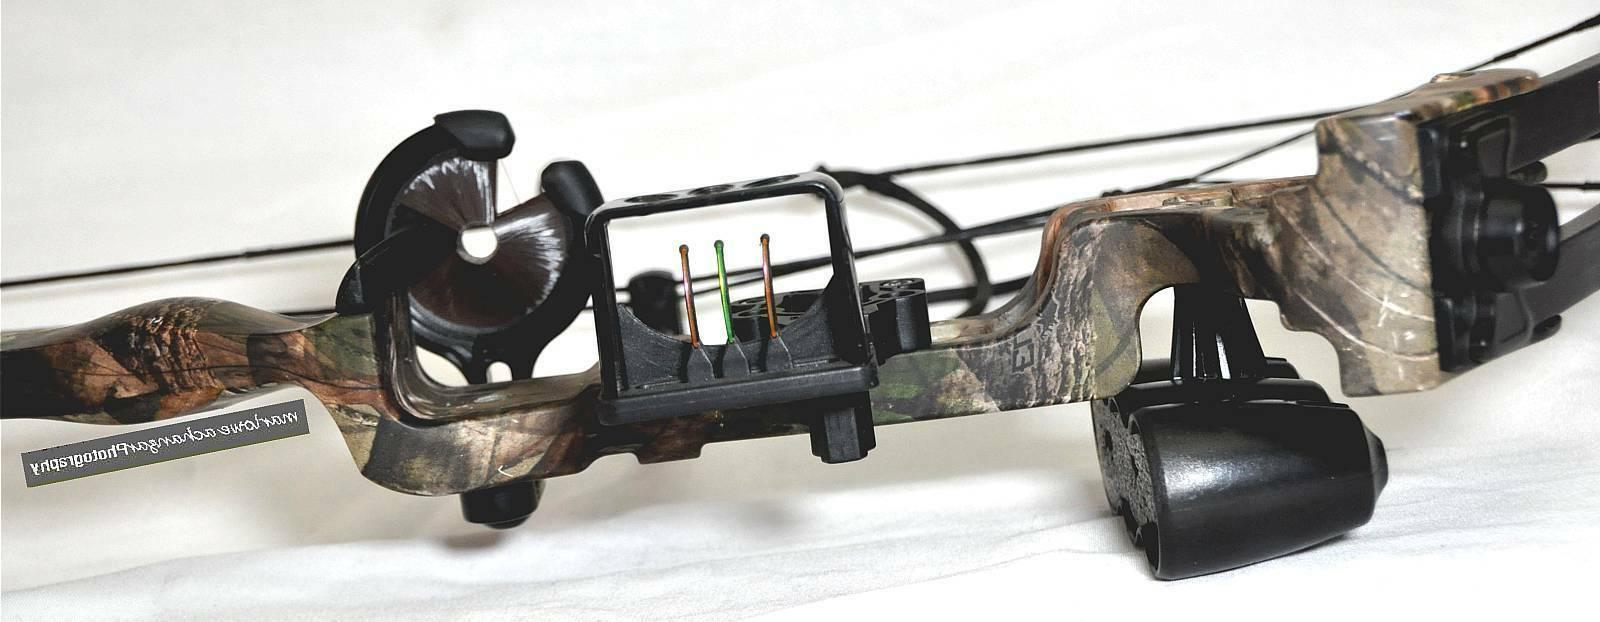 LOADED #### Vortex Compound Bow BARNETT Cost